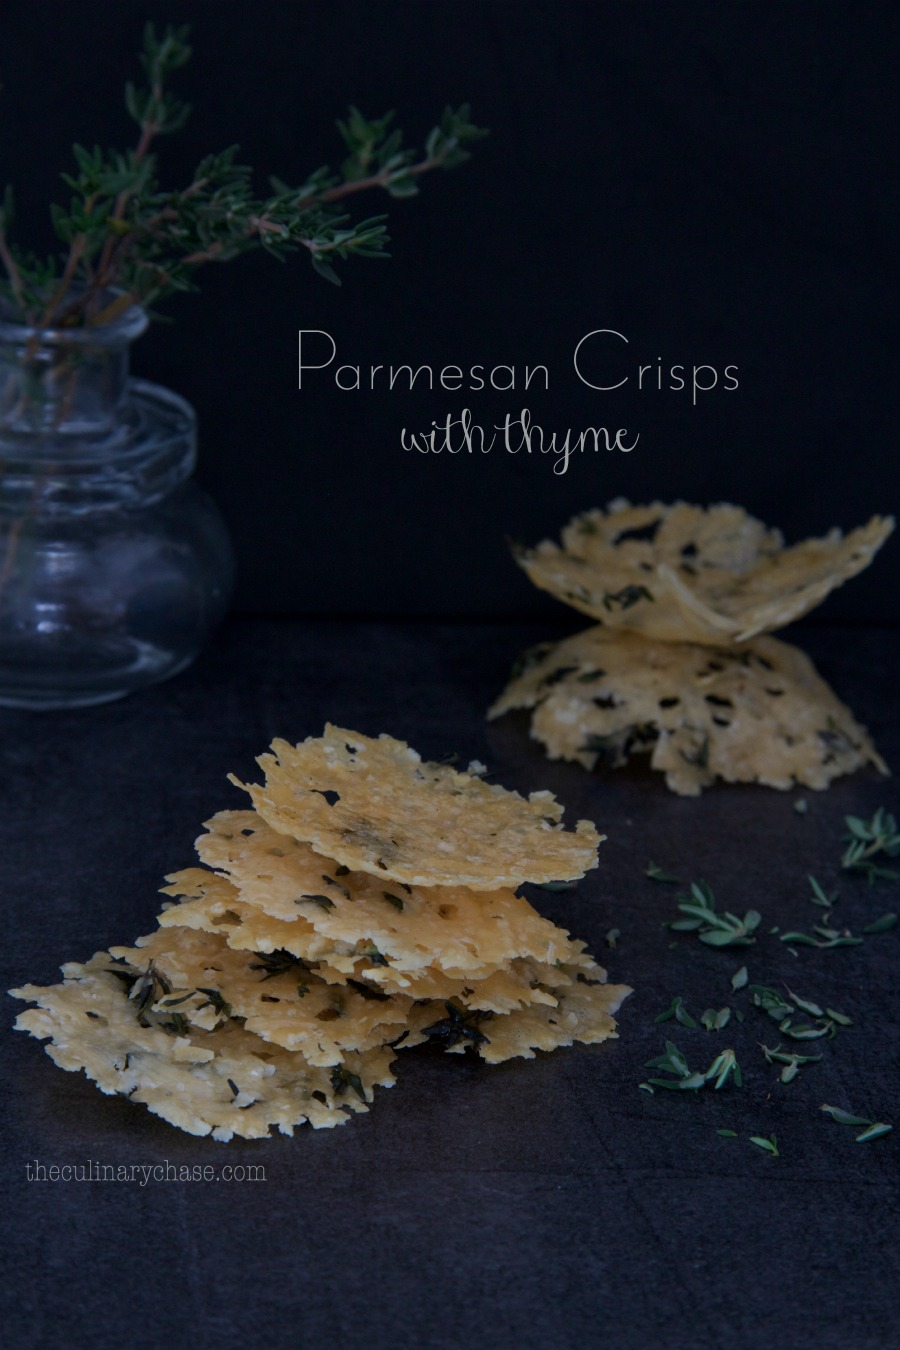 Parmesan Crisps with Thyme